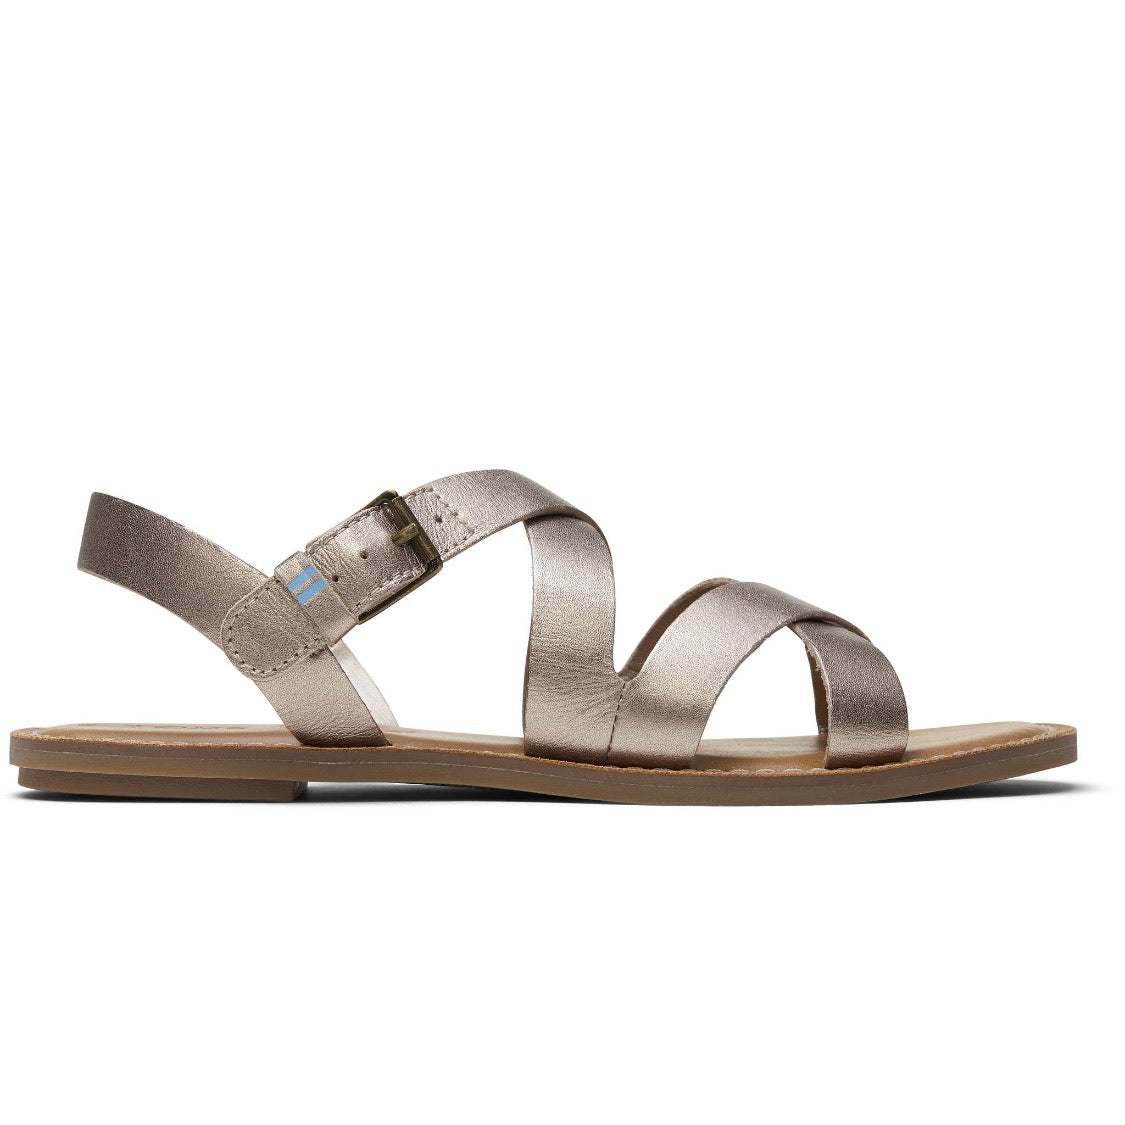 Rose Gold Metallic Leather Women's Sicily Sandals Price